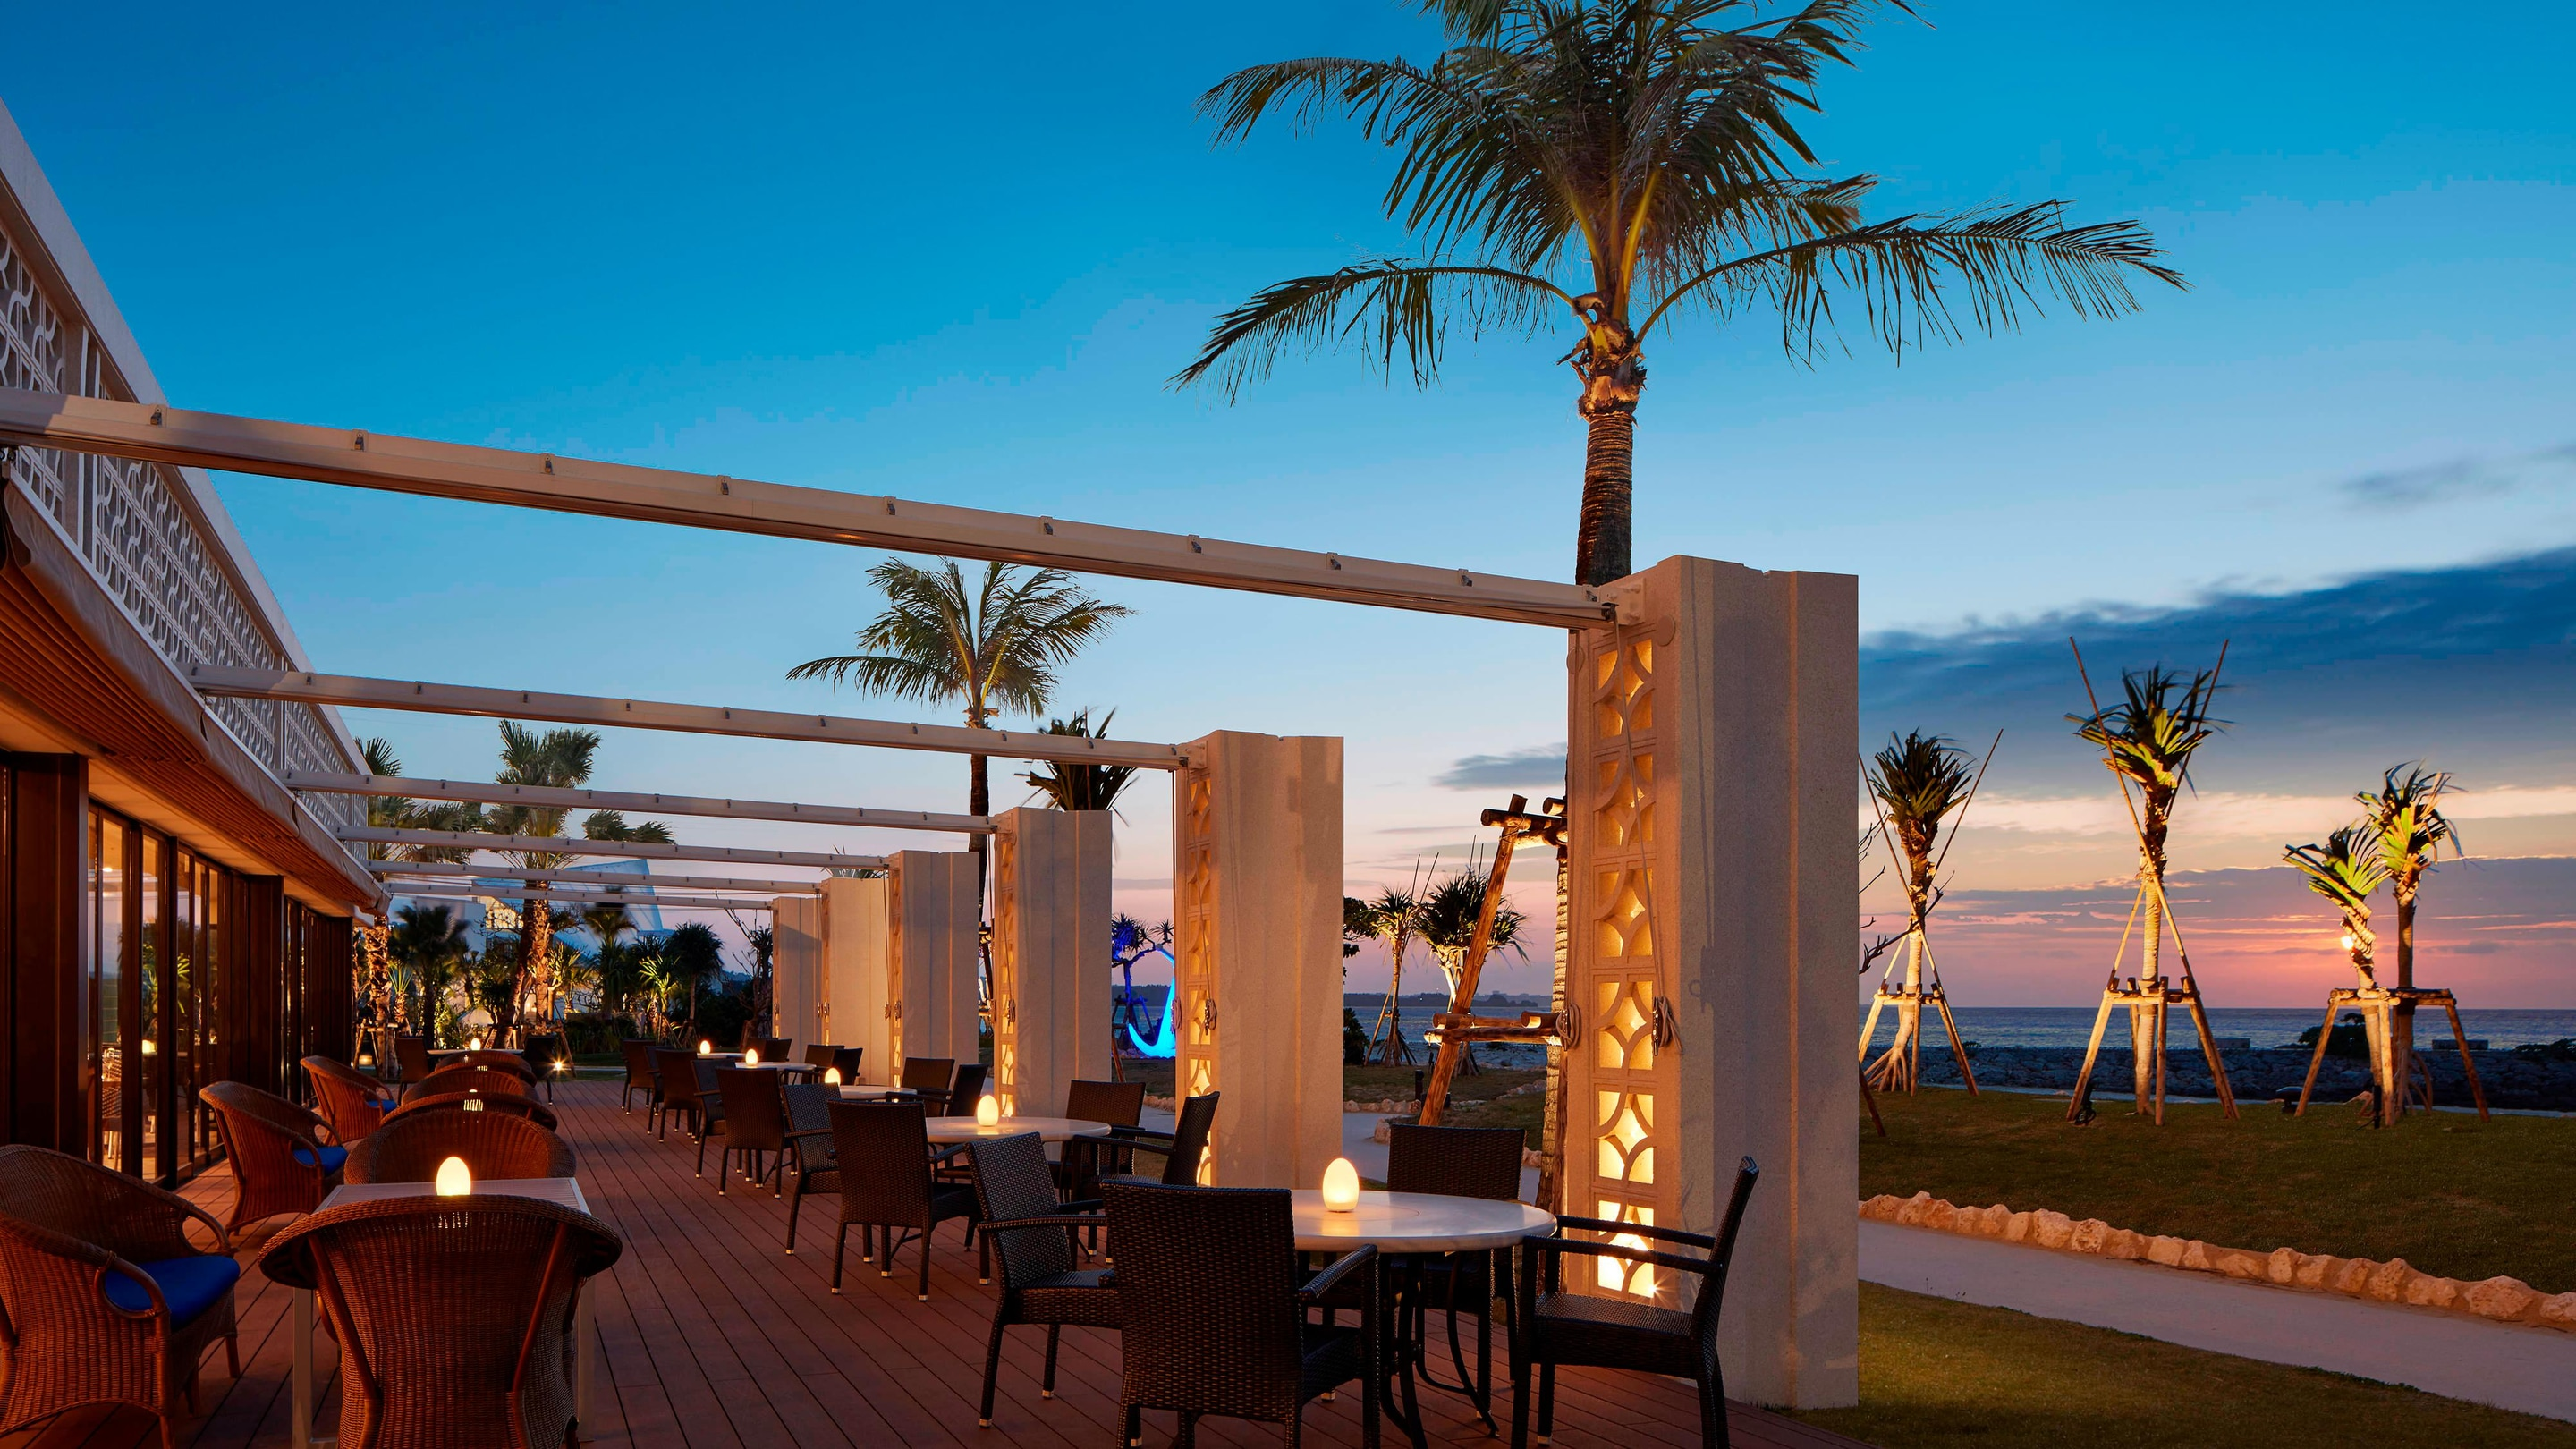 The grill terrace seating  and evening sunset